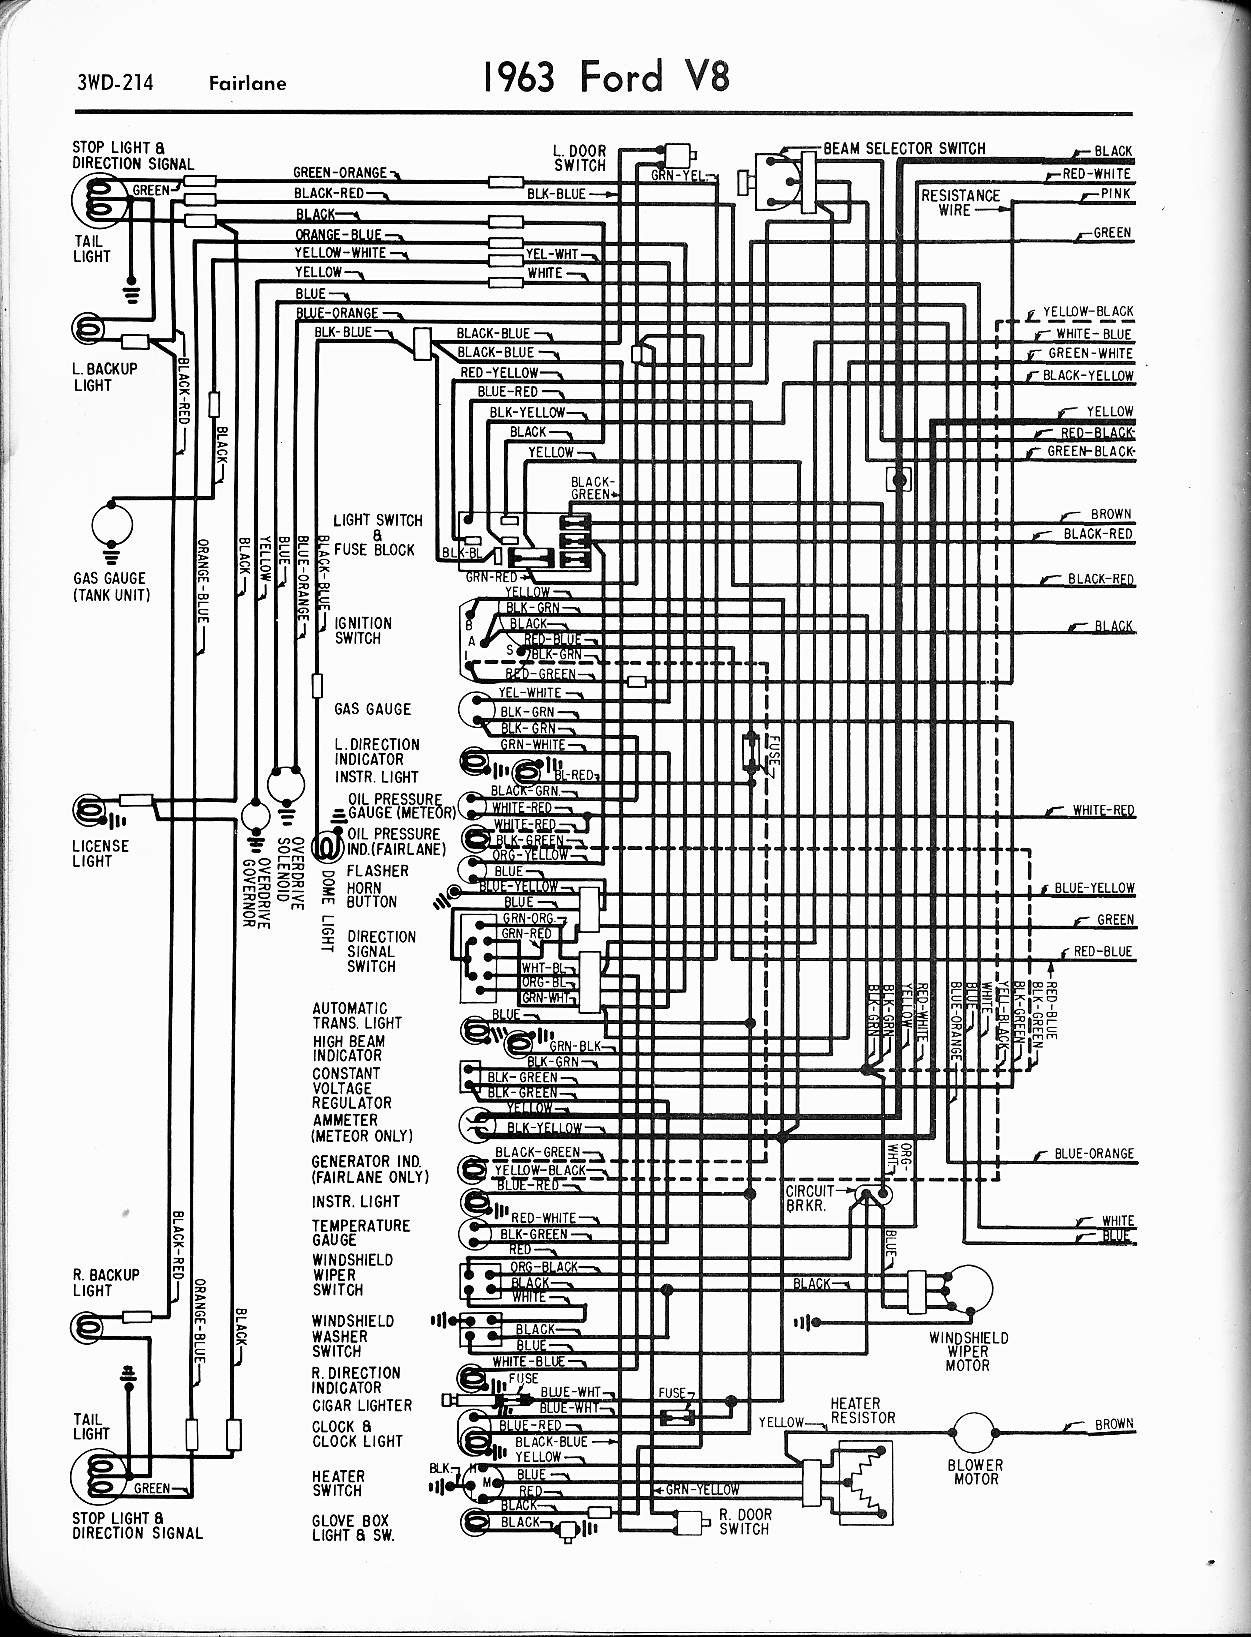 57 65 Ford Wiring Diagrams 1956 Thunderbird Wiring Diagram PDF 1956 Ford  Wiring Diagram